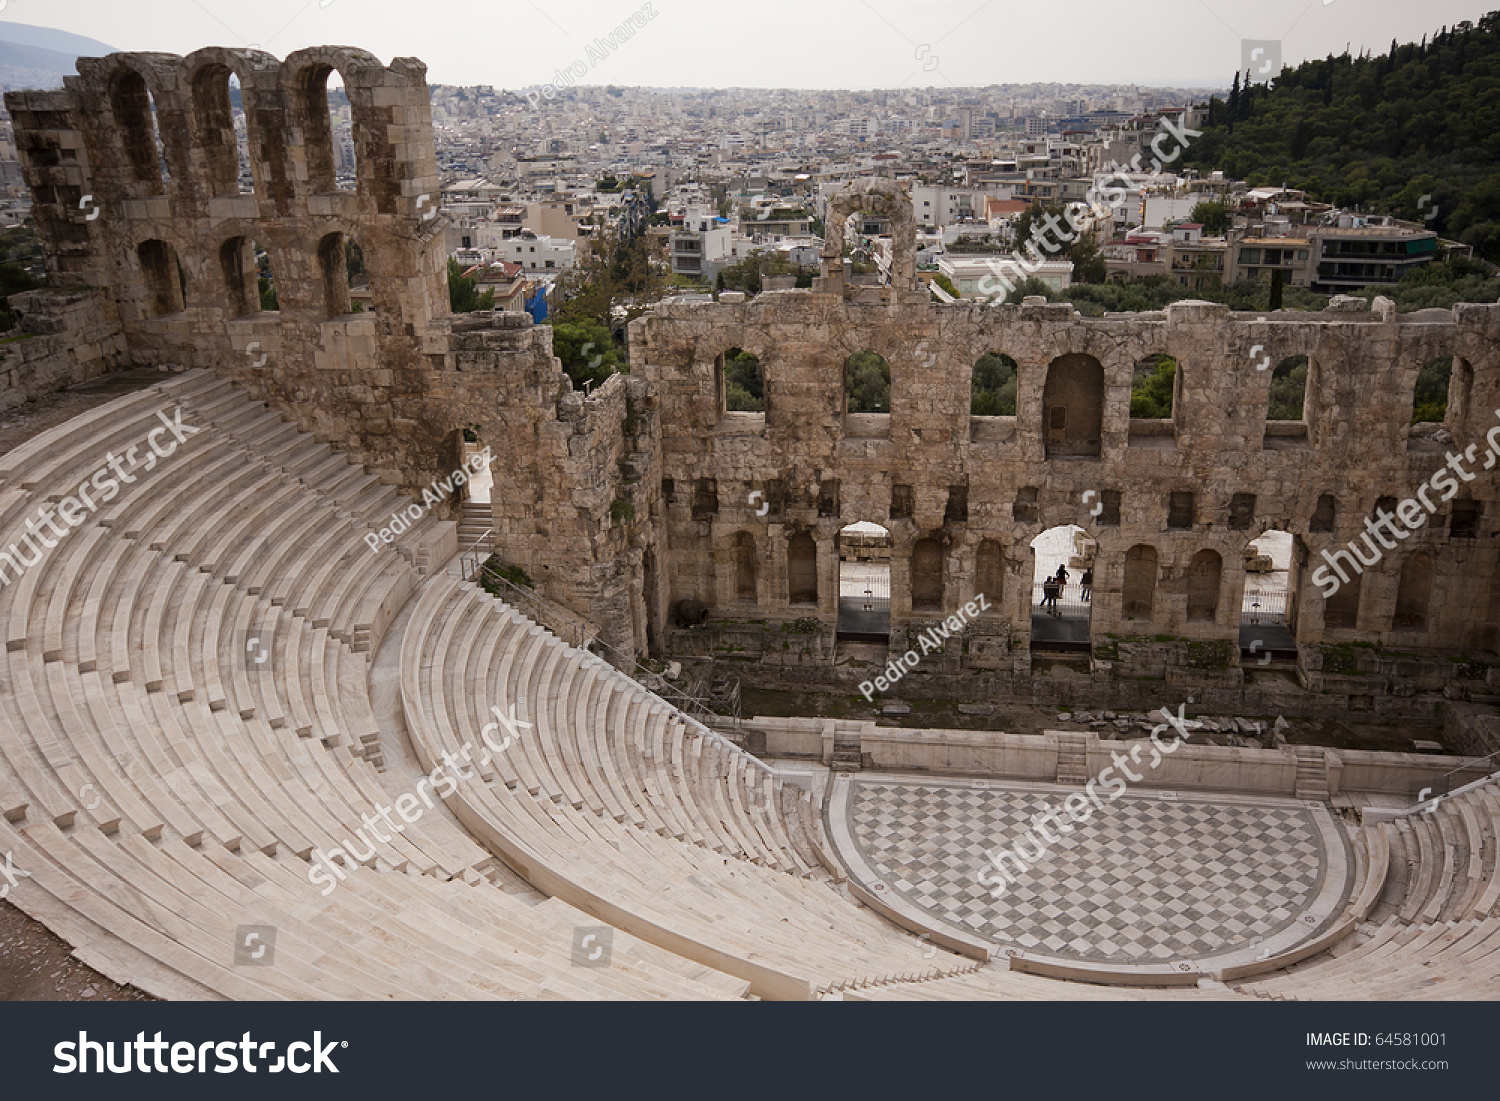 a paper on the theater of dionysus Theater of dionysus on december 21, 2016 | 0 comments on the south-eastern slopes of the acropolis, in athens , was the big theater of dionysus , where theatrical performances took place (tragedies and comedies, which were sung and danced) in athens during the celebrations in honour of the god .